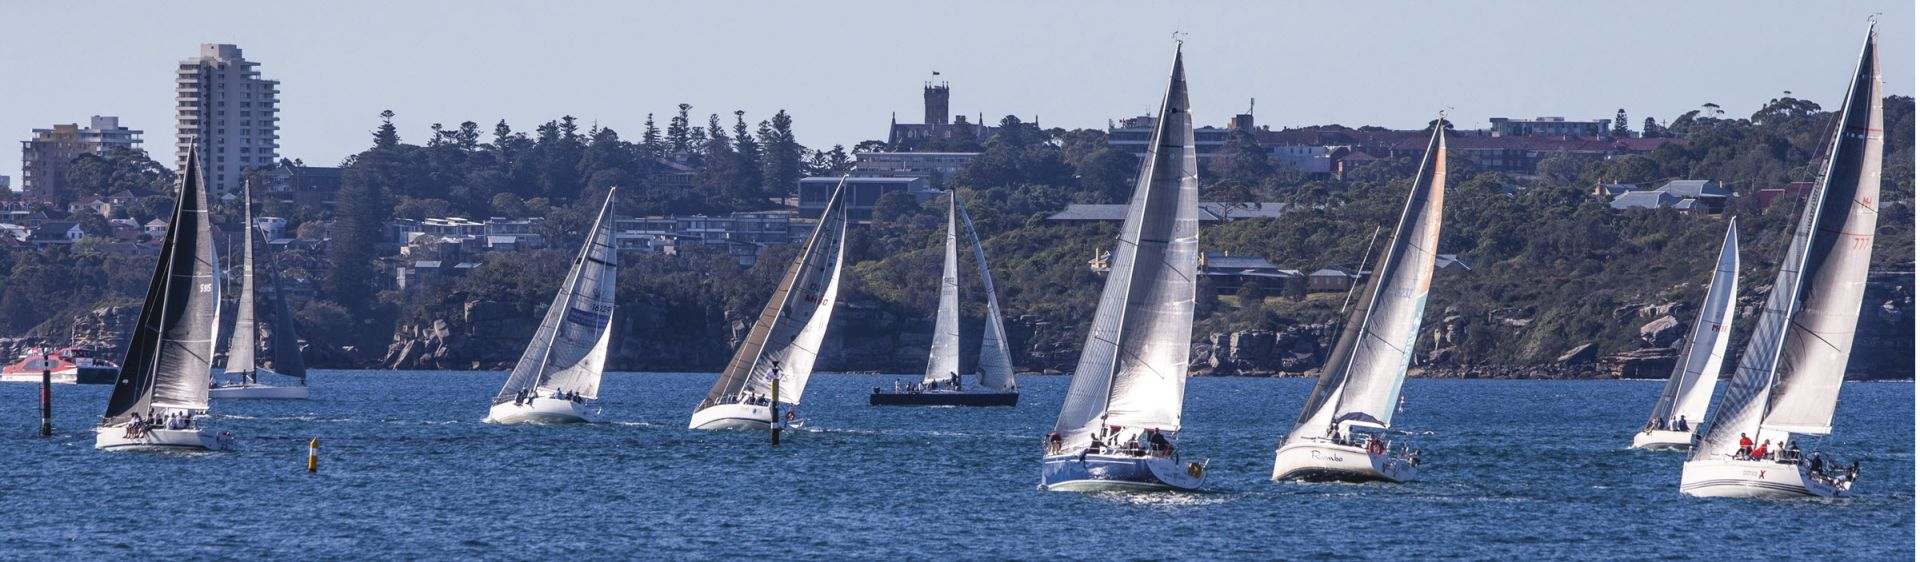 Sailing, Sydney Harbour